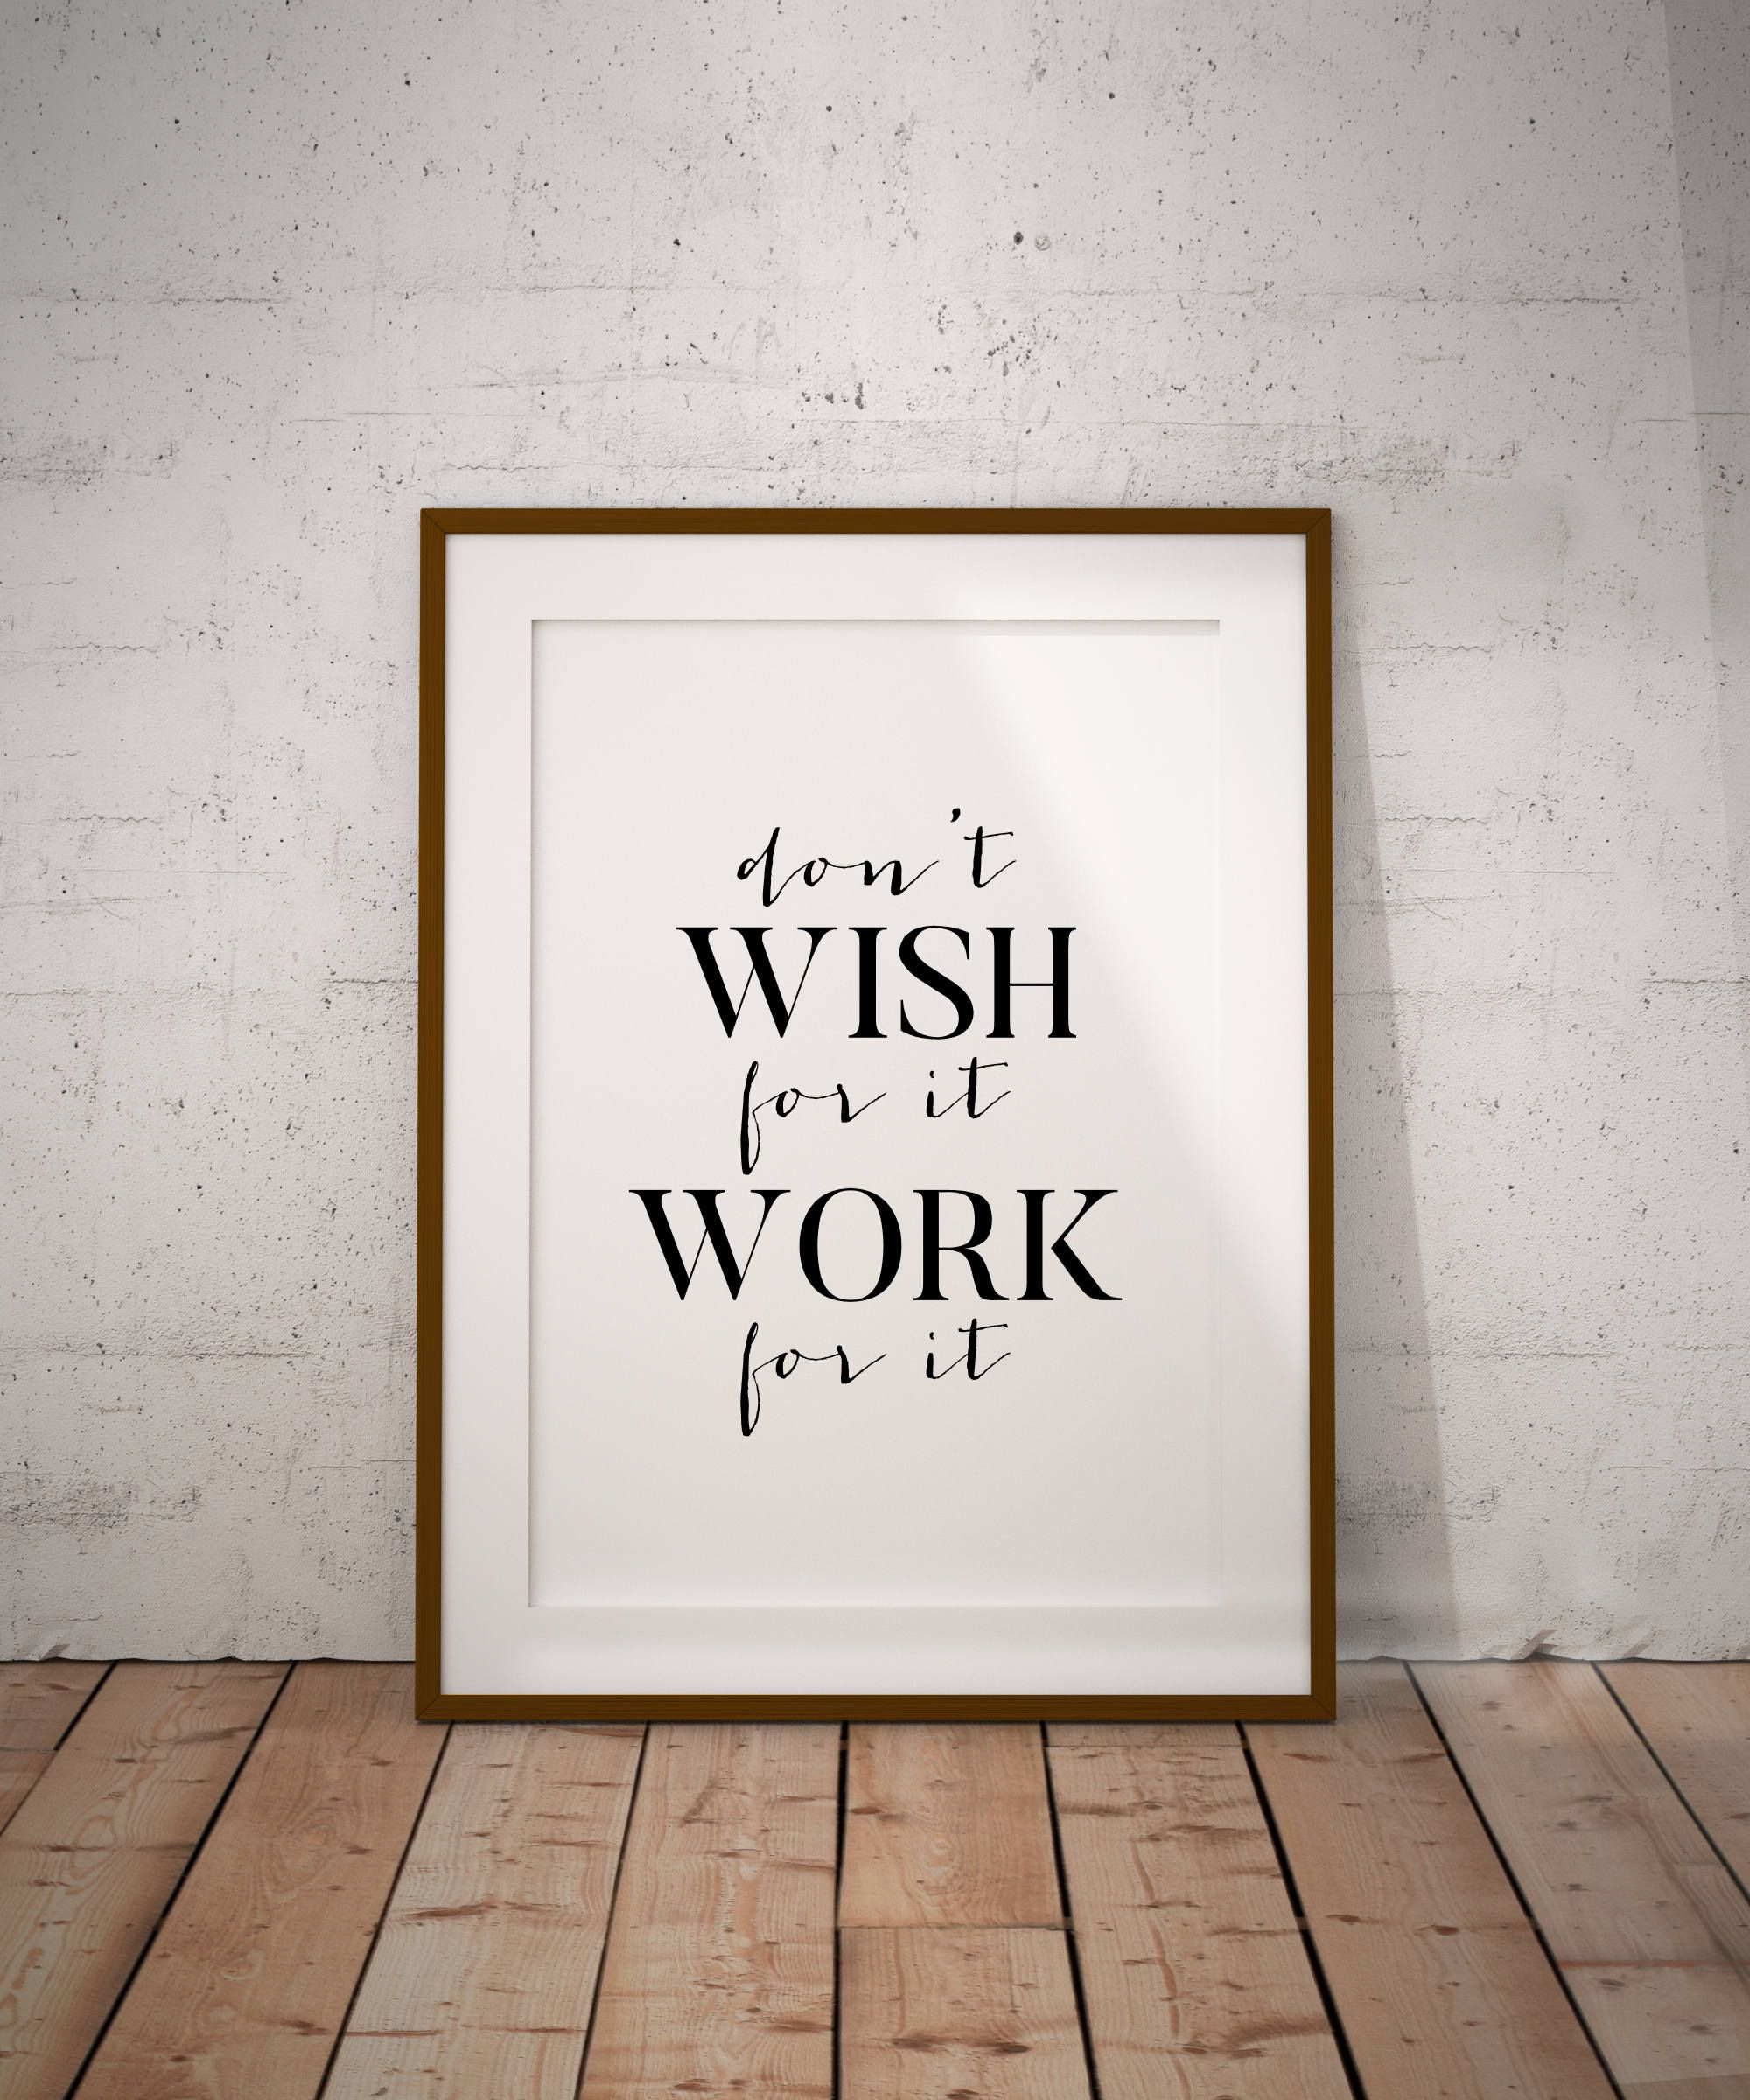 Just launched donut wish for it work for it printable wall art